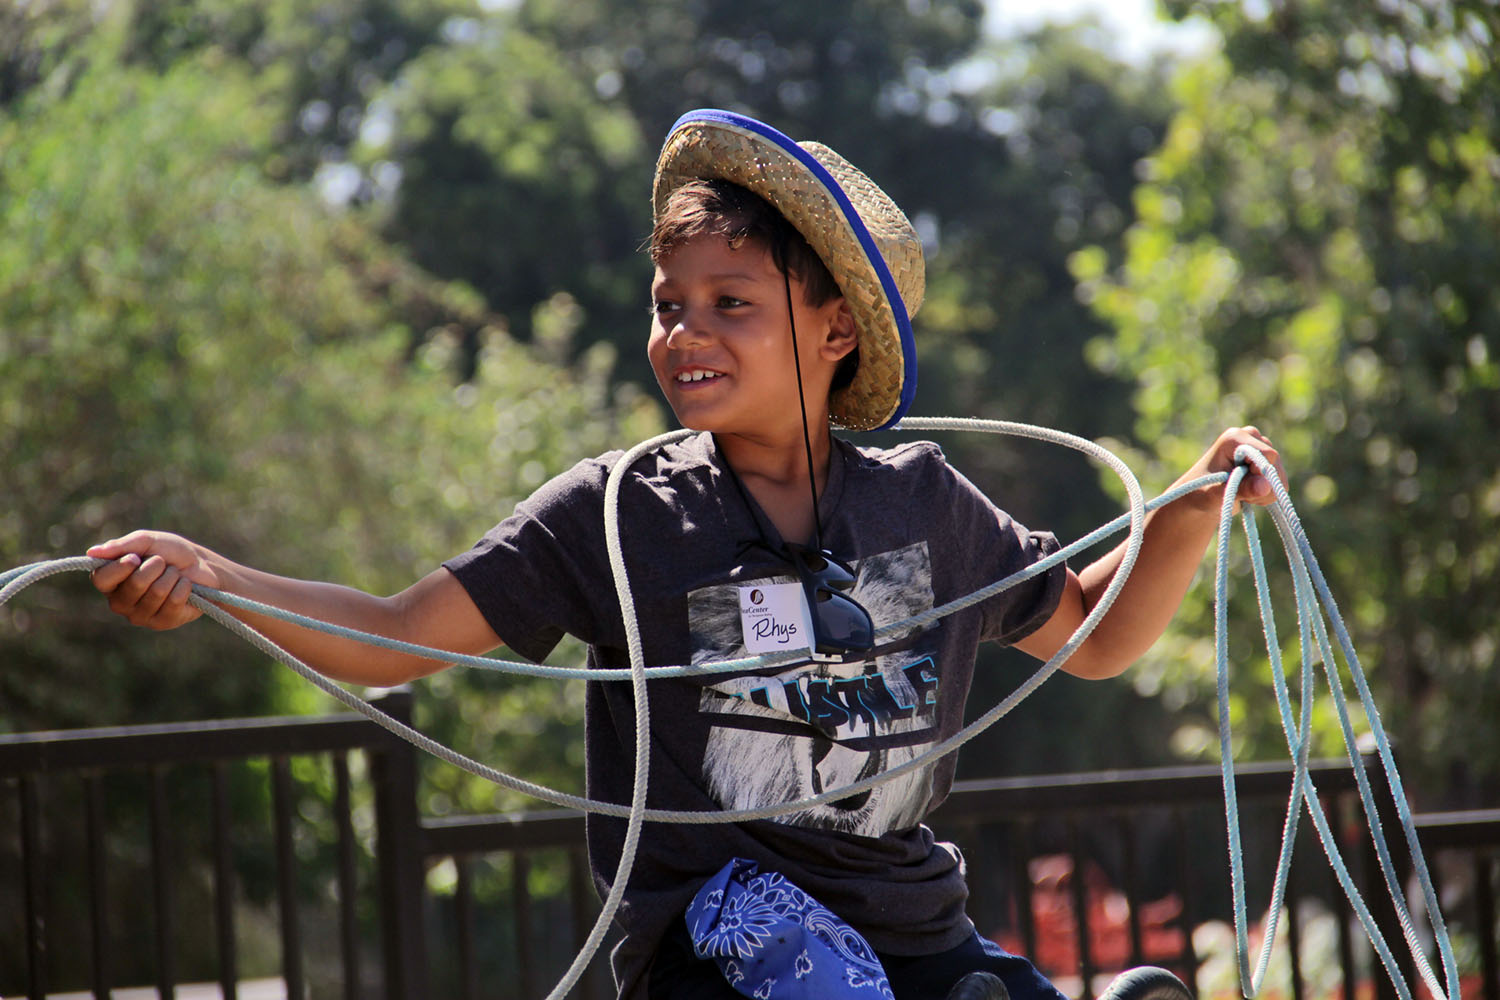 Rhys Taufaasau plays with the lasso during the J.F. Shea Therapeutic Riding Center's annual Cowboy Camp on Wednesday, Aug. 14. Photo: Shawn Raymundo